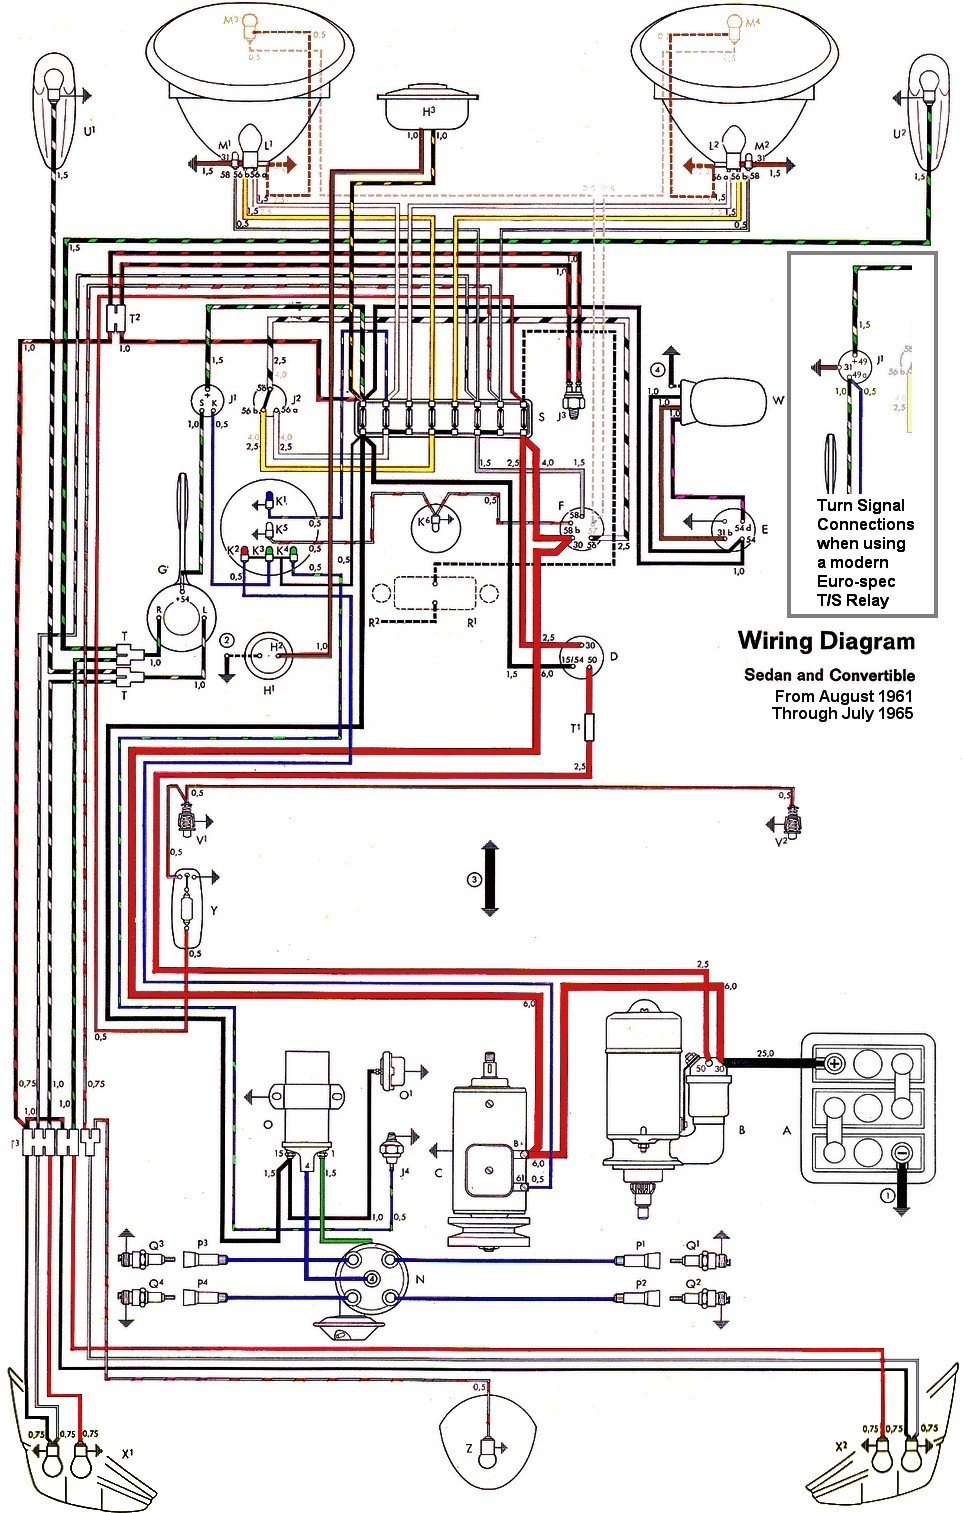 63 vw fuse diagram | reactor-speed wiring diagram union -  reactor-speed.buildingblocks2016.eu  buildingblocks2016.eu